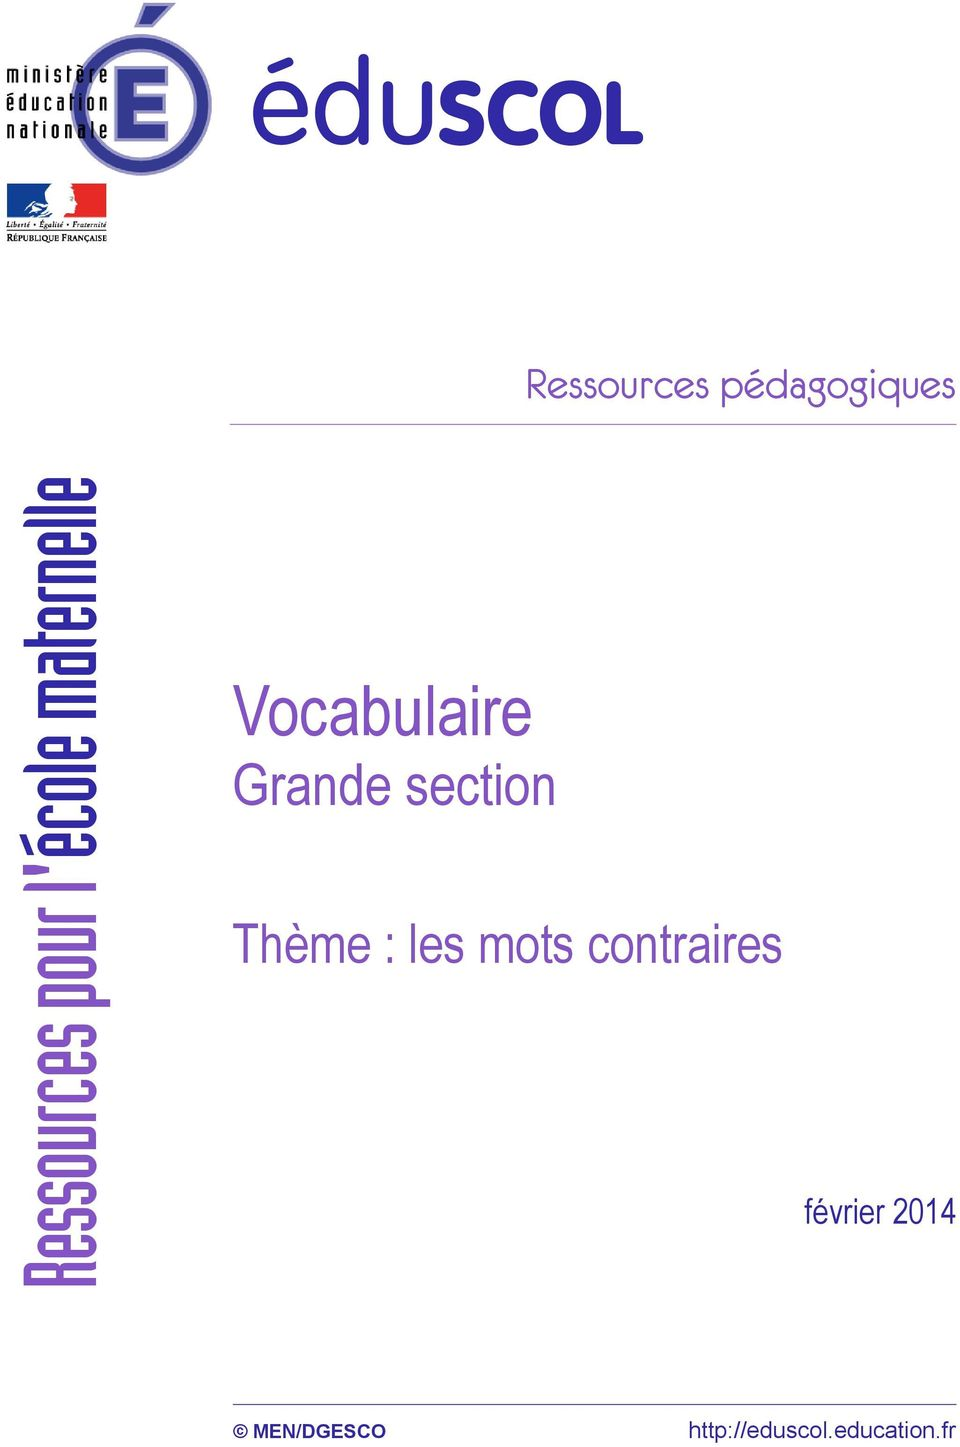 Vocabulaire Grande section février